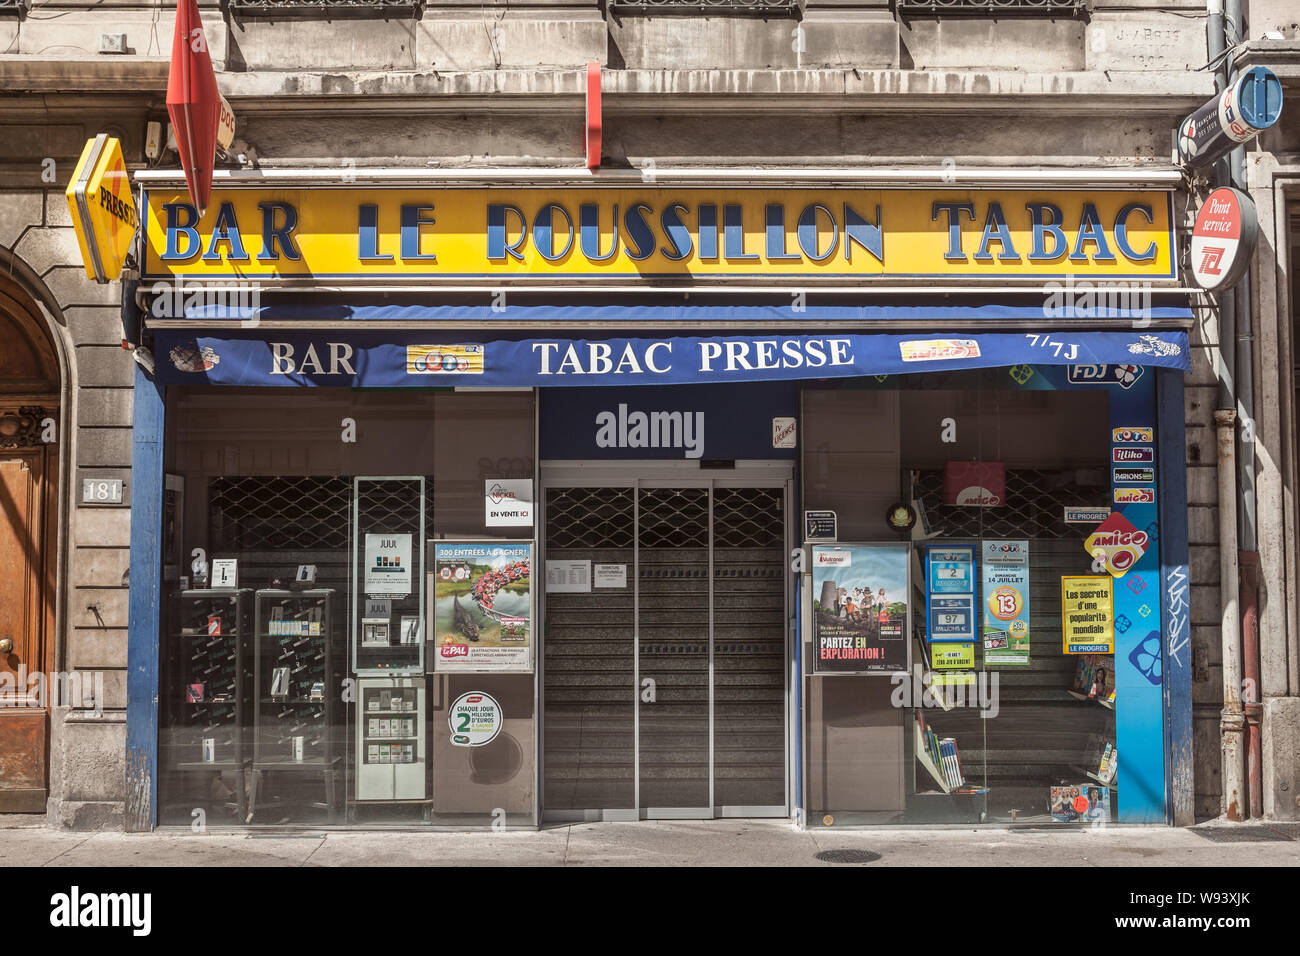 French Tobacconist Stock Photos & French Tobacconist Stock